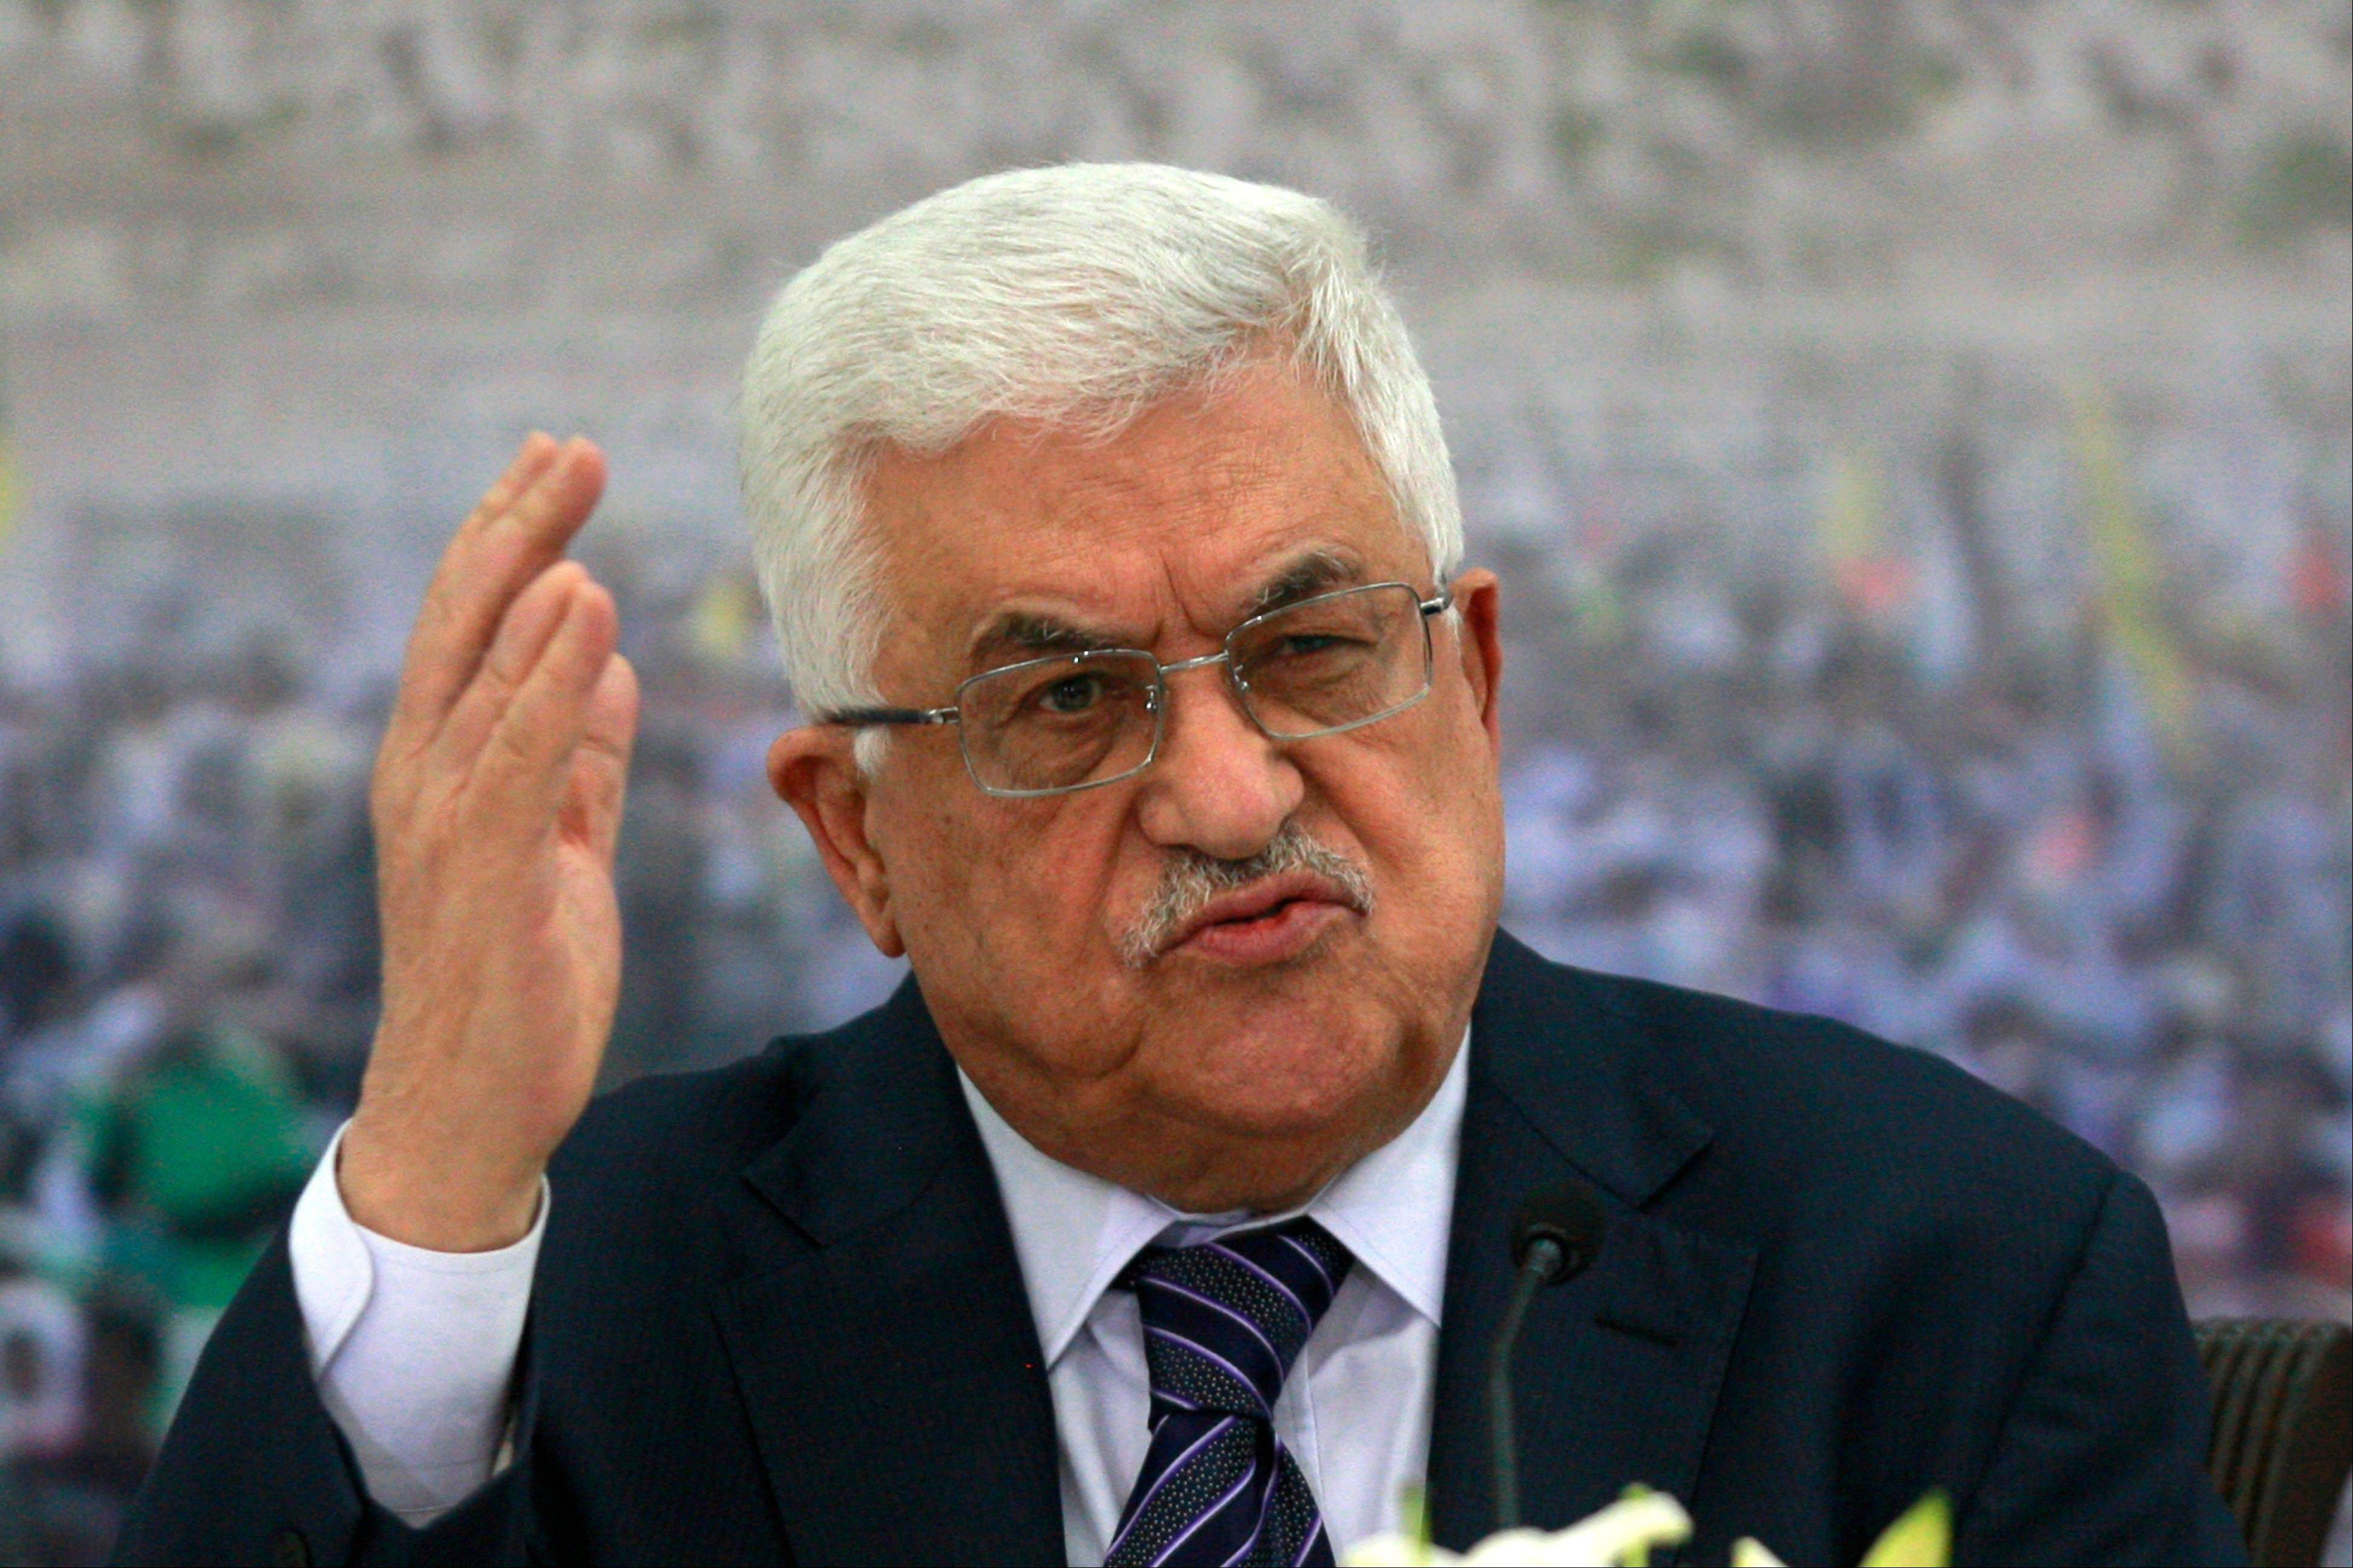 After bitter rival Hamas fought Israel to a draw in Gaza, Palestinian President Mahmoud Abbas has no choice but to ignore strong U.S. objections and seek U.N. recognition of a state of Palestine next week. But even such recognition may not be enough for the Western-backed backed proponent of a peace deal with Israel to stay credible as a leader and counter the soaring popularity of Gaza's Hamas militants.